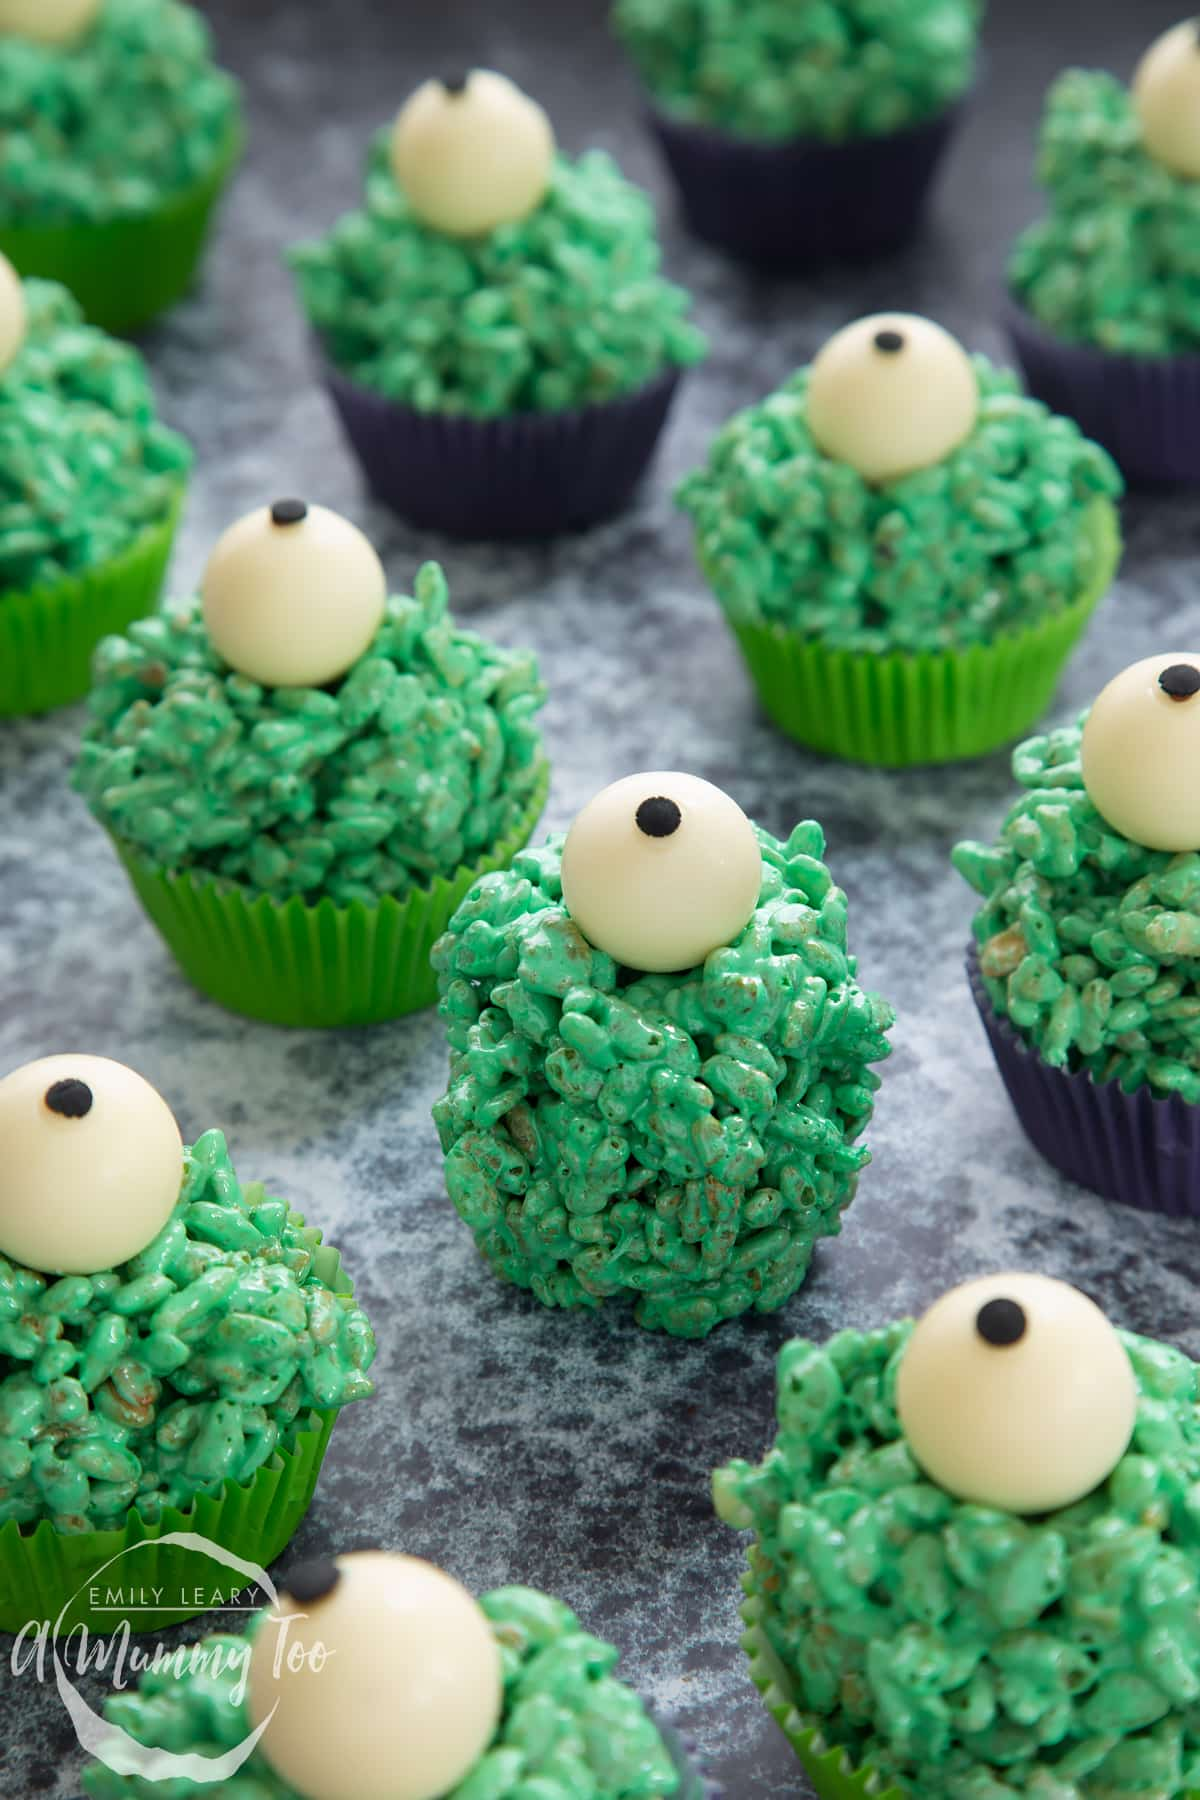 Halloween crispy cakes in purple and green cupcake cases. The crispy cakes are dyed green and topped with white chocolate spheres decorated to look like eyeballs. One has been unwrapped.